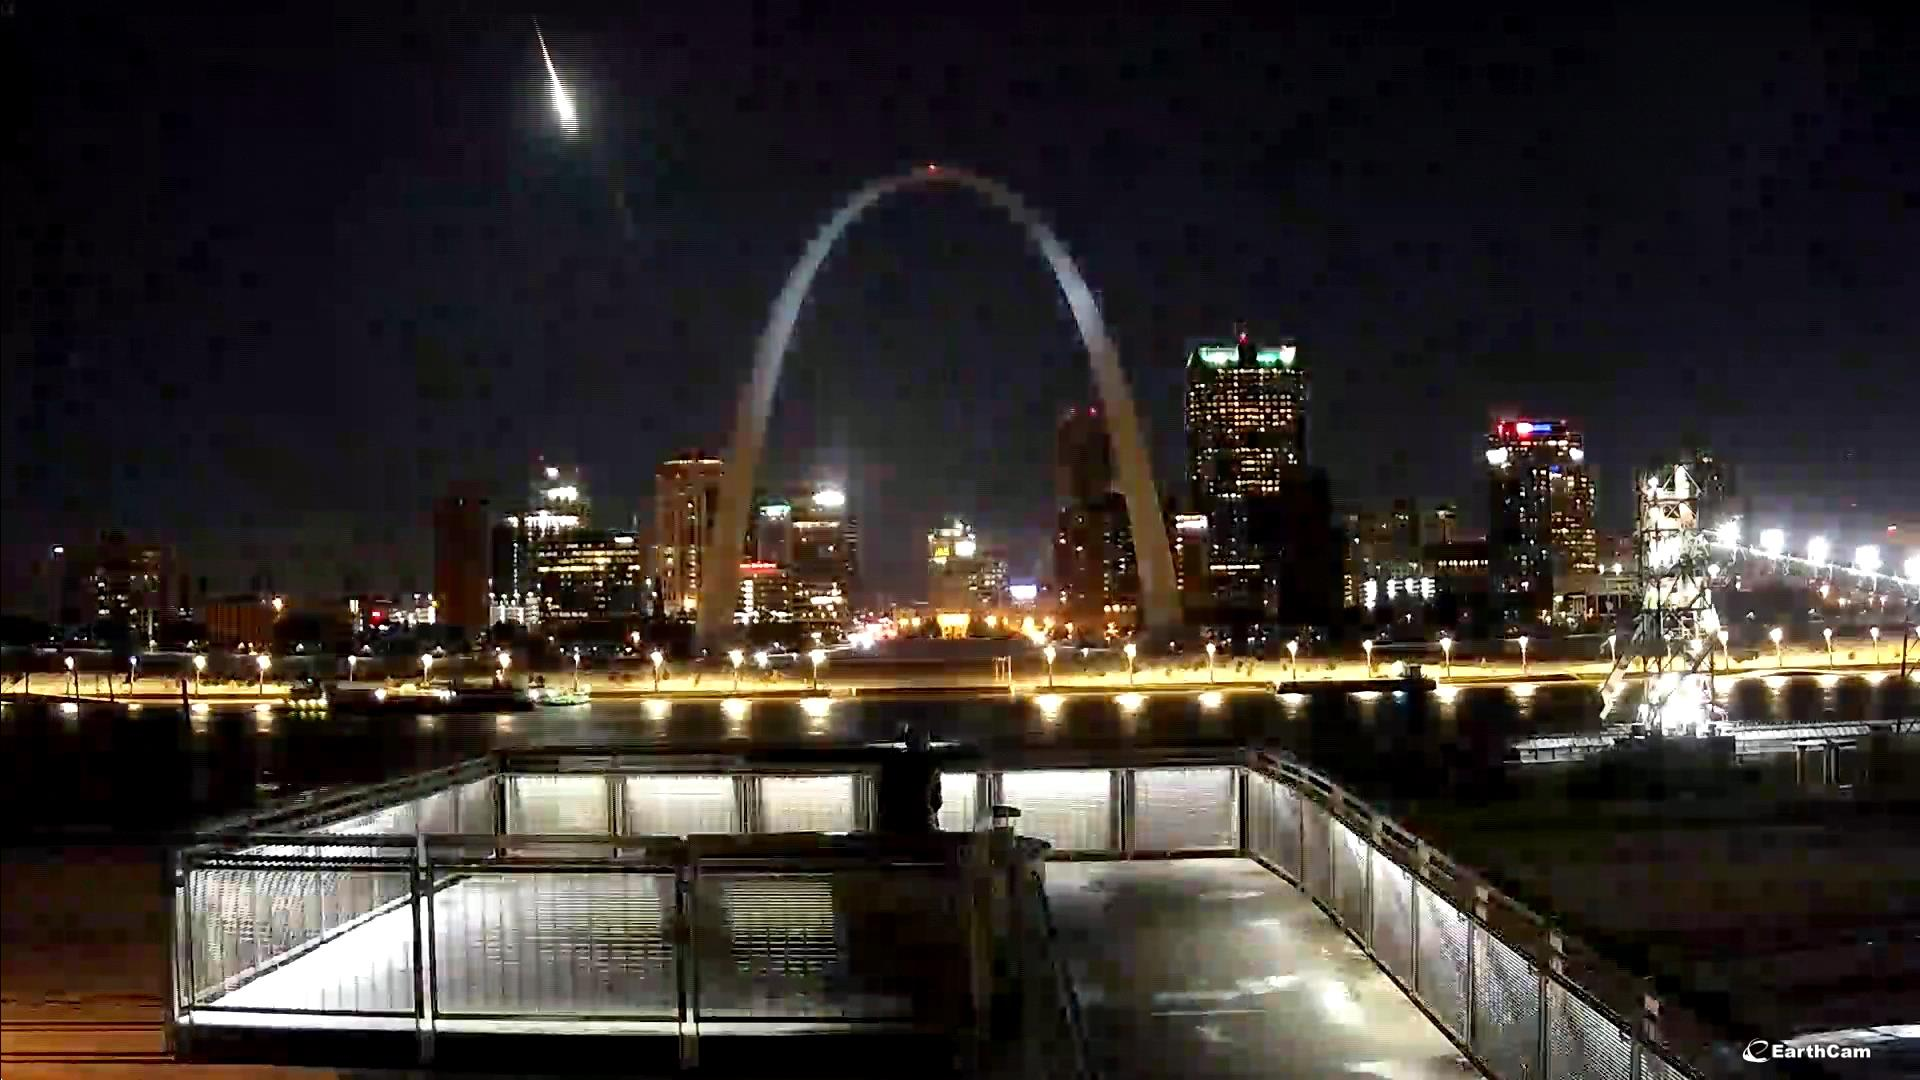 Video Appears To Show Meteor Streaking By Gateway Arch In St Louis